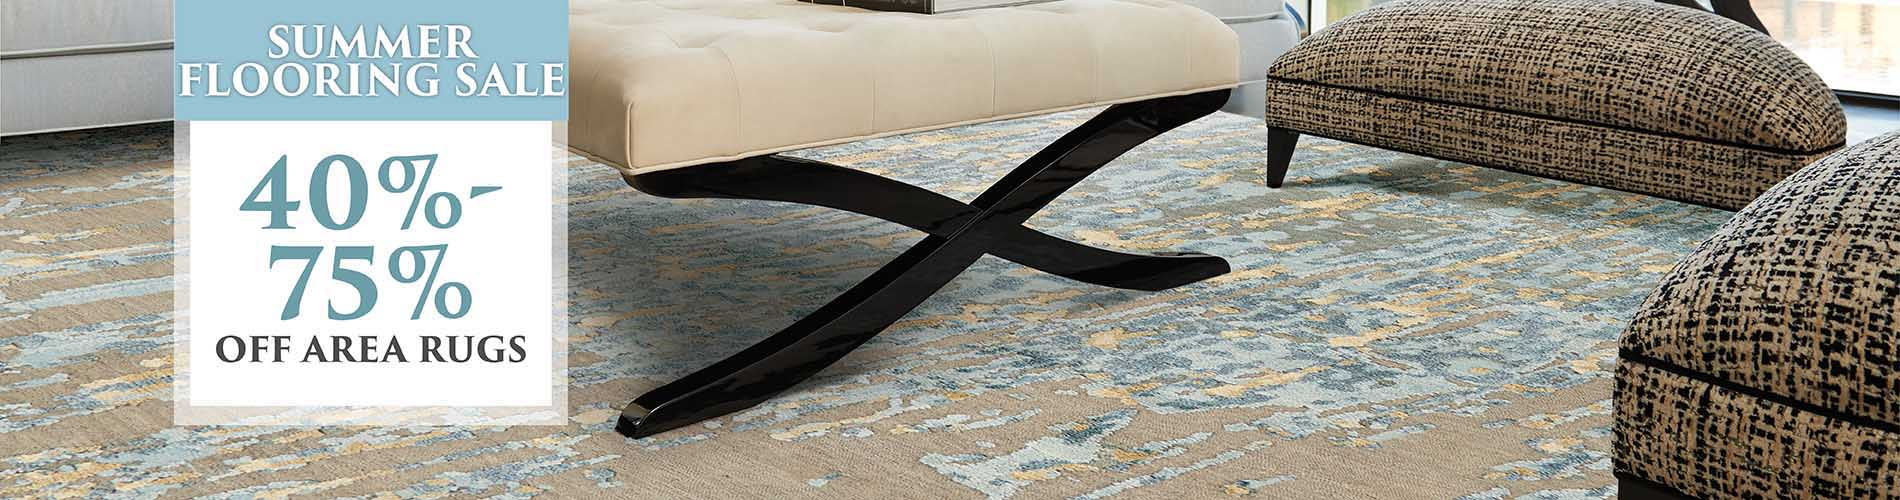 40% - 75% OFF ALL RUGS!